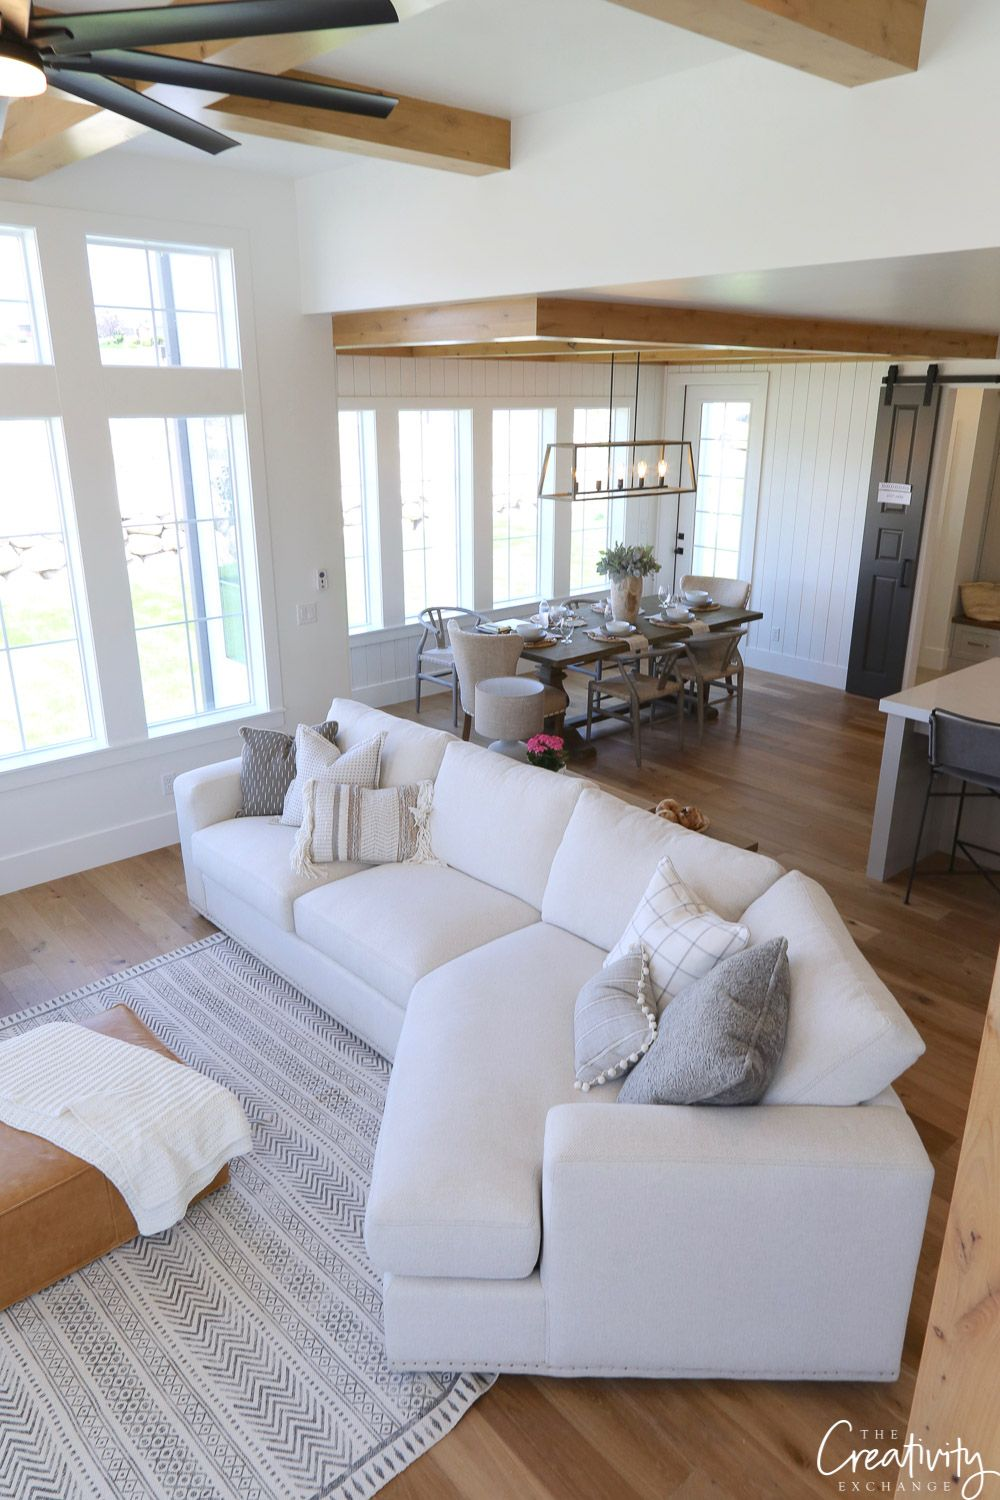 2018 Utah Valley Parade of Homes: Part 2 images